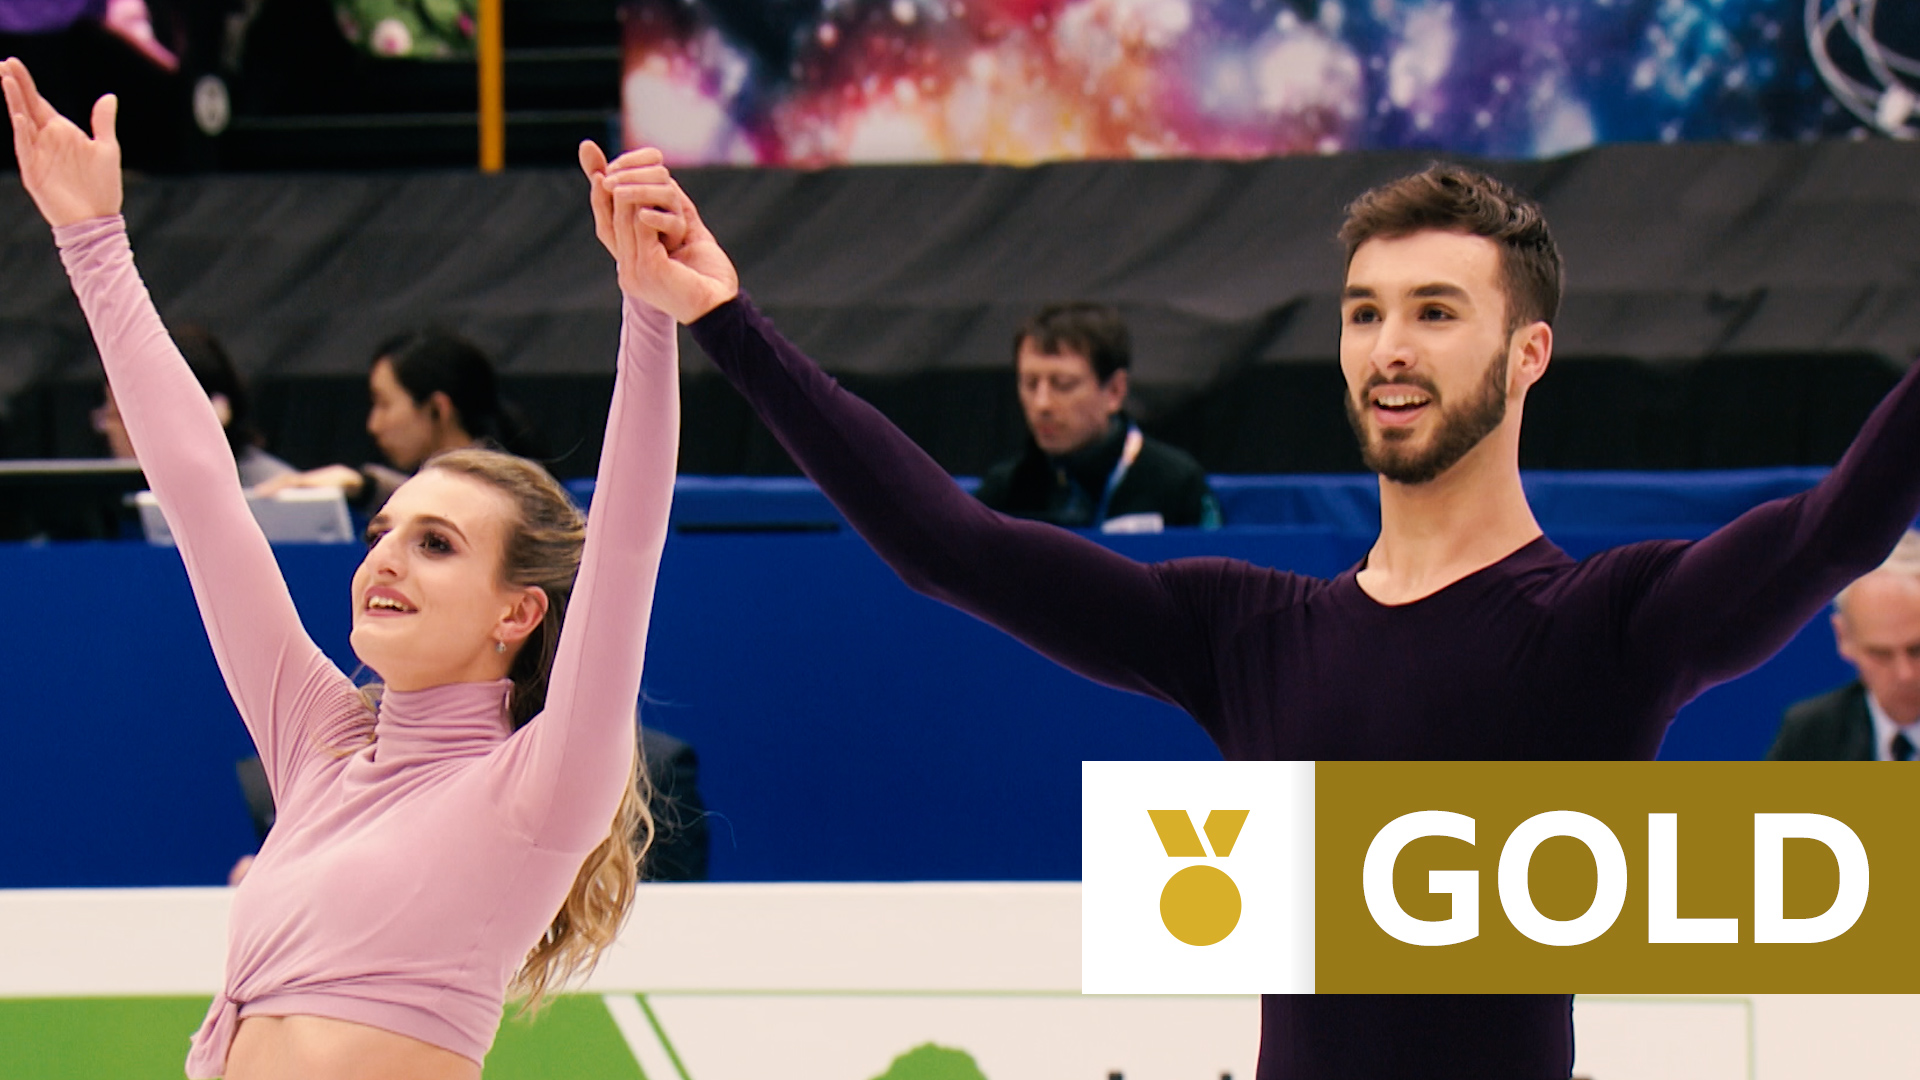 Figure Skating World Champs: France's Papadkis and Cizeron retain free dance crown